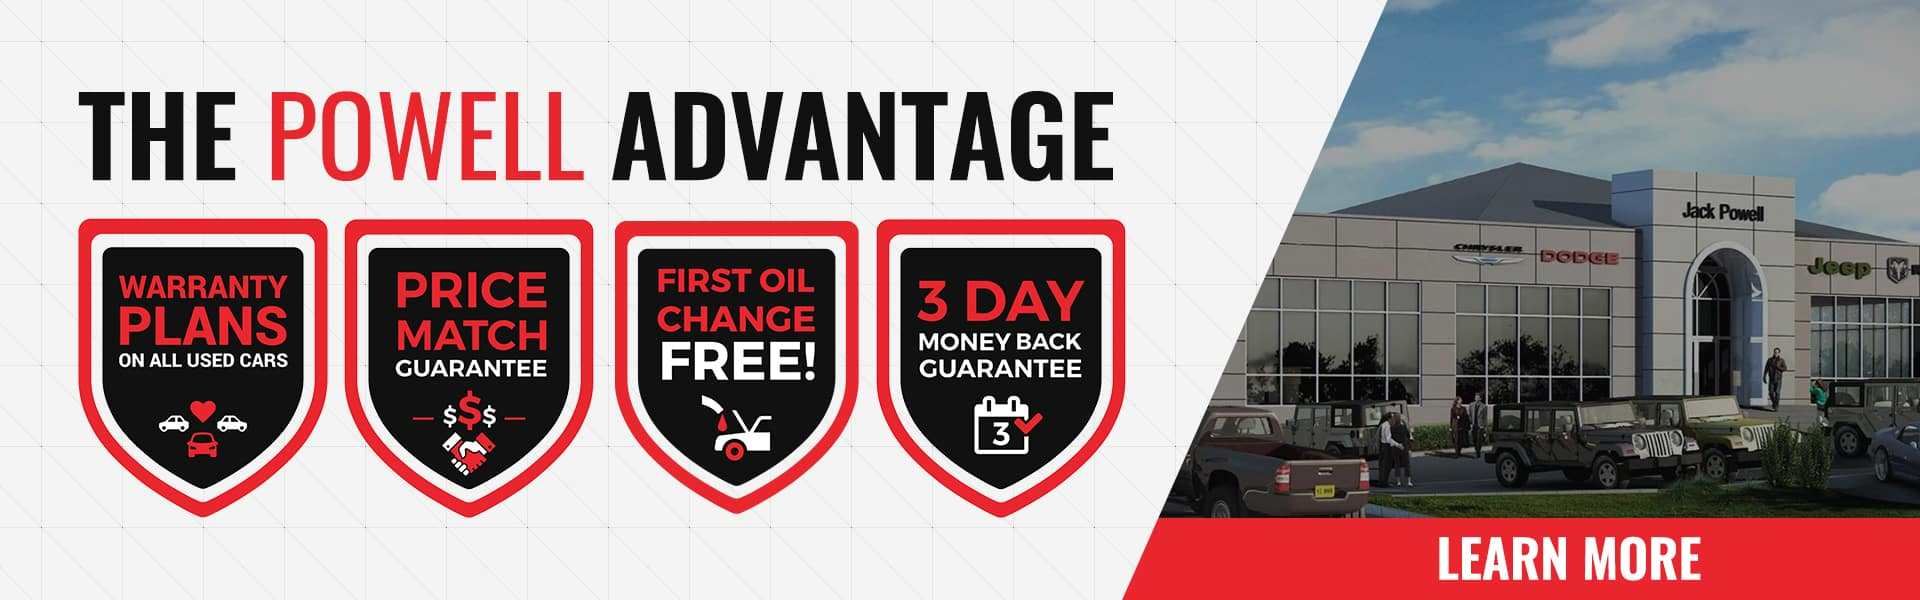 The Powell Advantage Banner